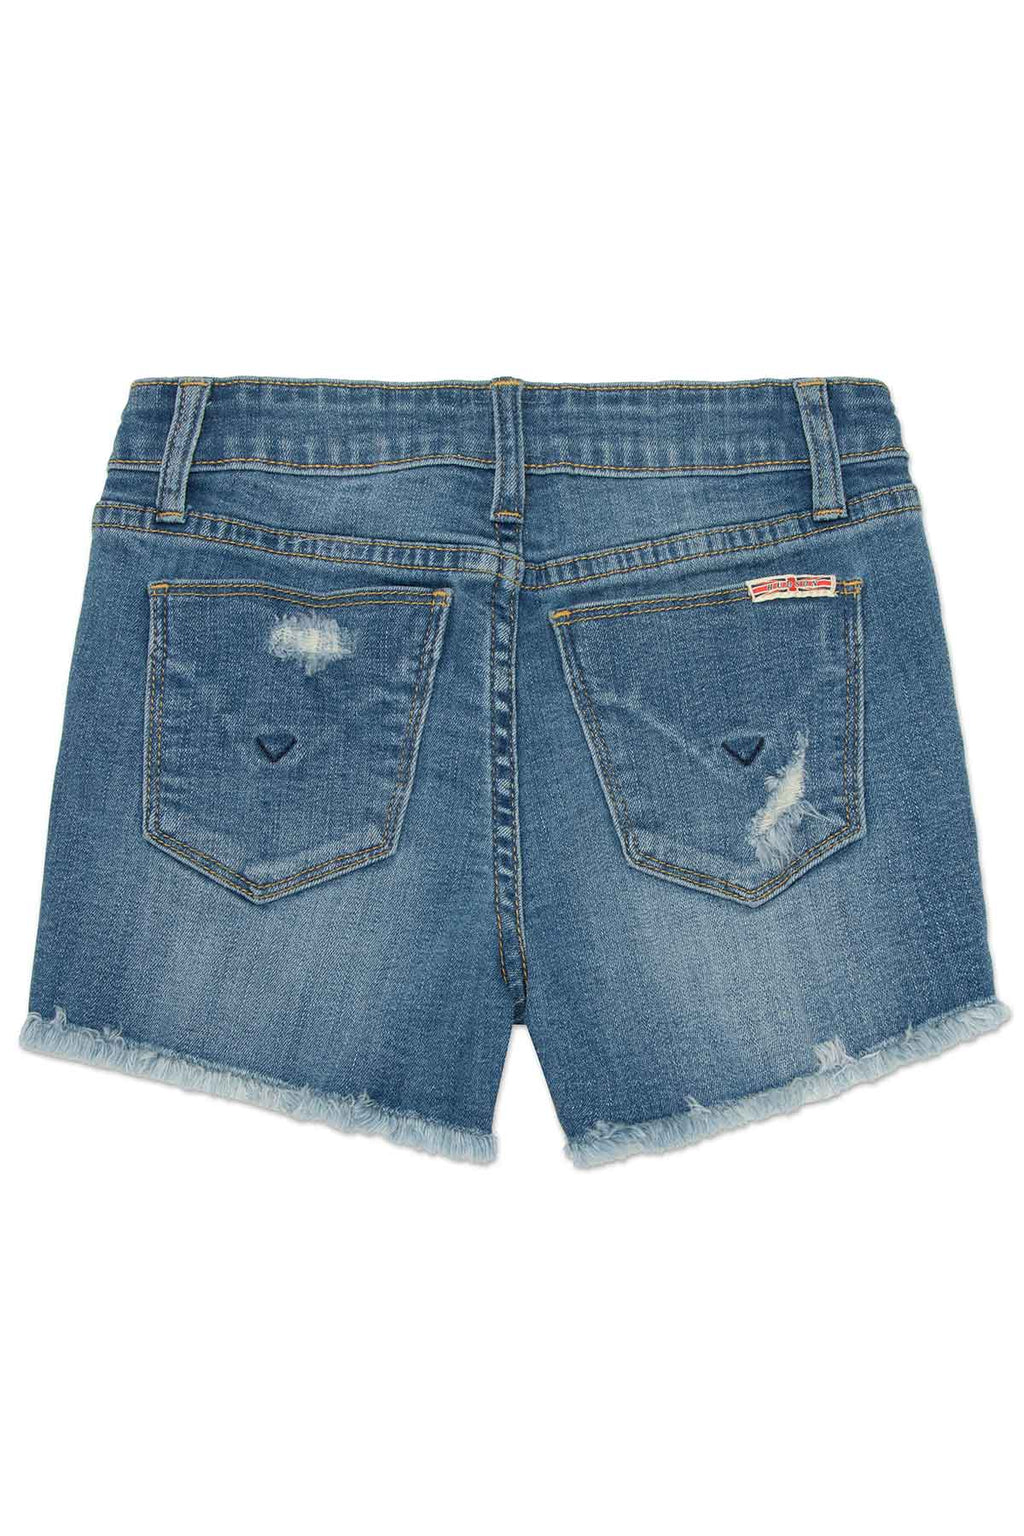 Little Girls Ava Short, Sizes 2T-6X - hudsonjeans